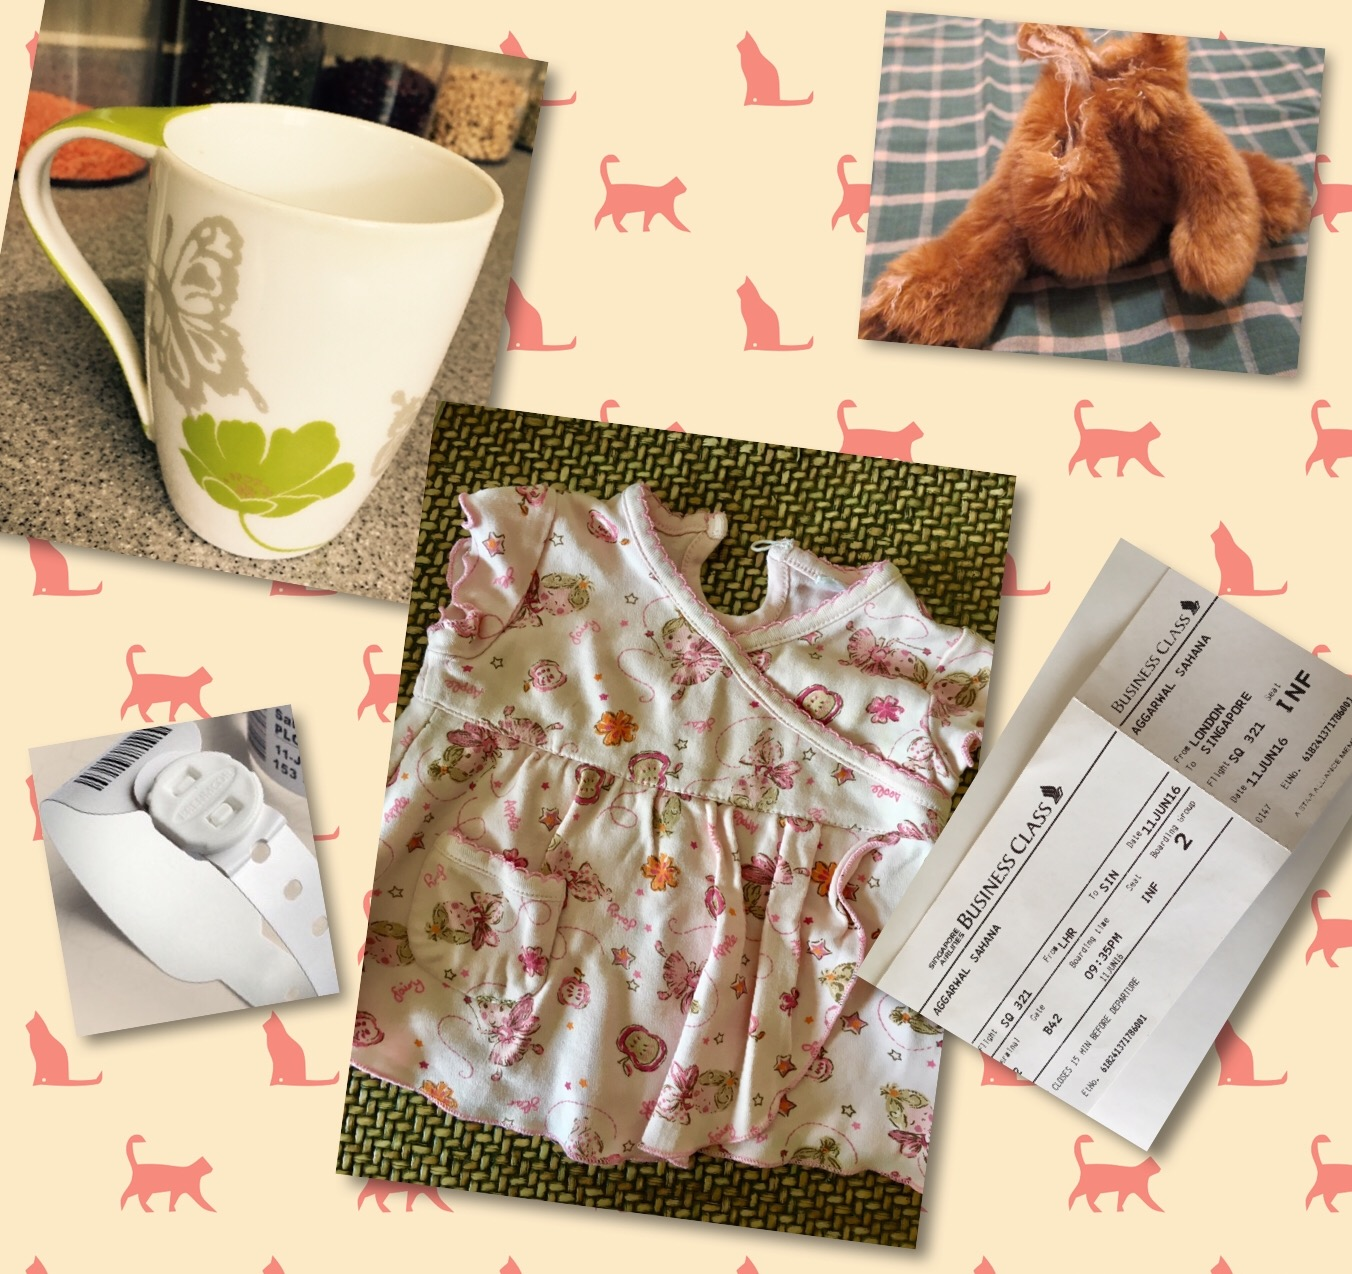 Hoarder or collector- old cup, baby clothes, headless teddy, boarding pass  and hospital tag